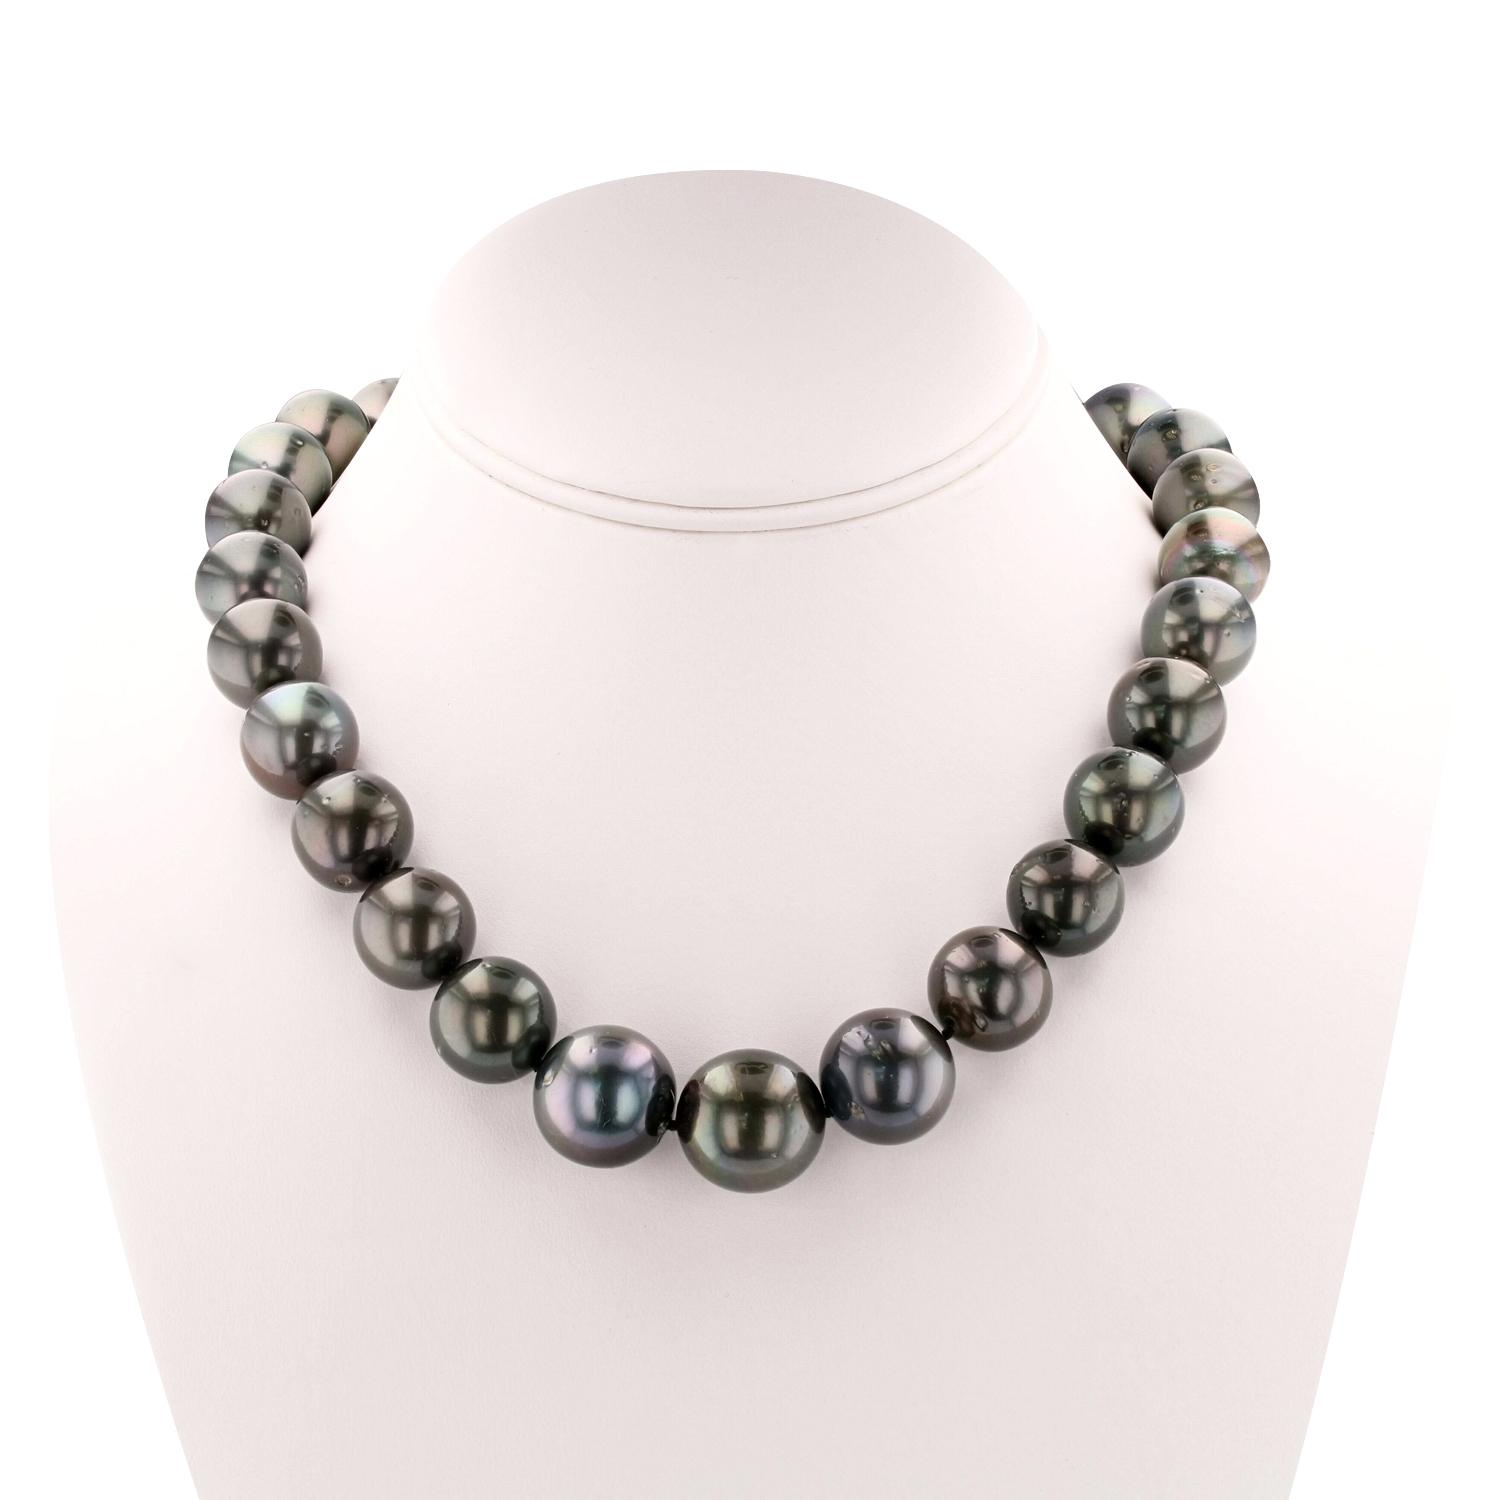 White Gold 14.0mm-18.0mm Tahitian Cultured Pearl Necklace ...